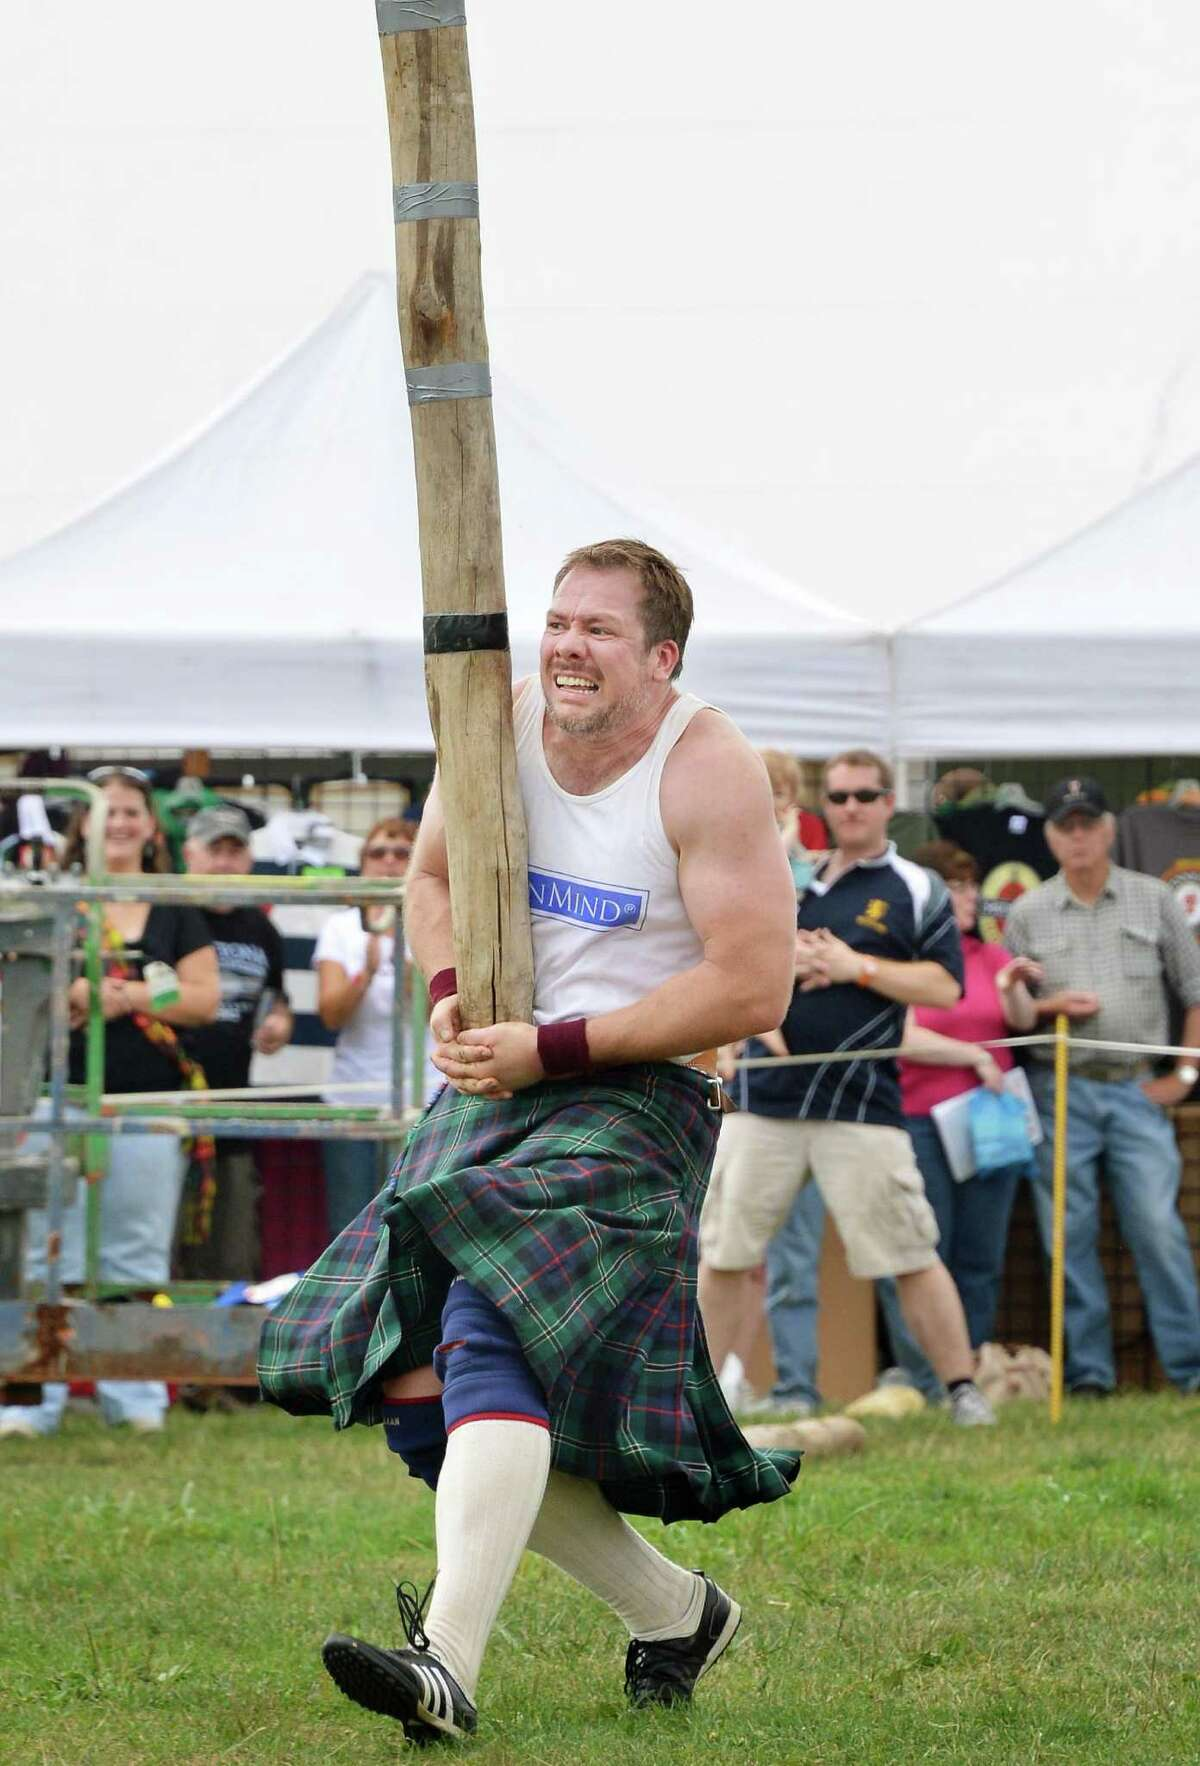 Dave Barron of Syracuse tosses the caber during the Scottish Games at the Altamont Fairgrounds Saturday Sept. 1, 2012. (John Carl D'Annibale / Times Union)